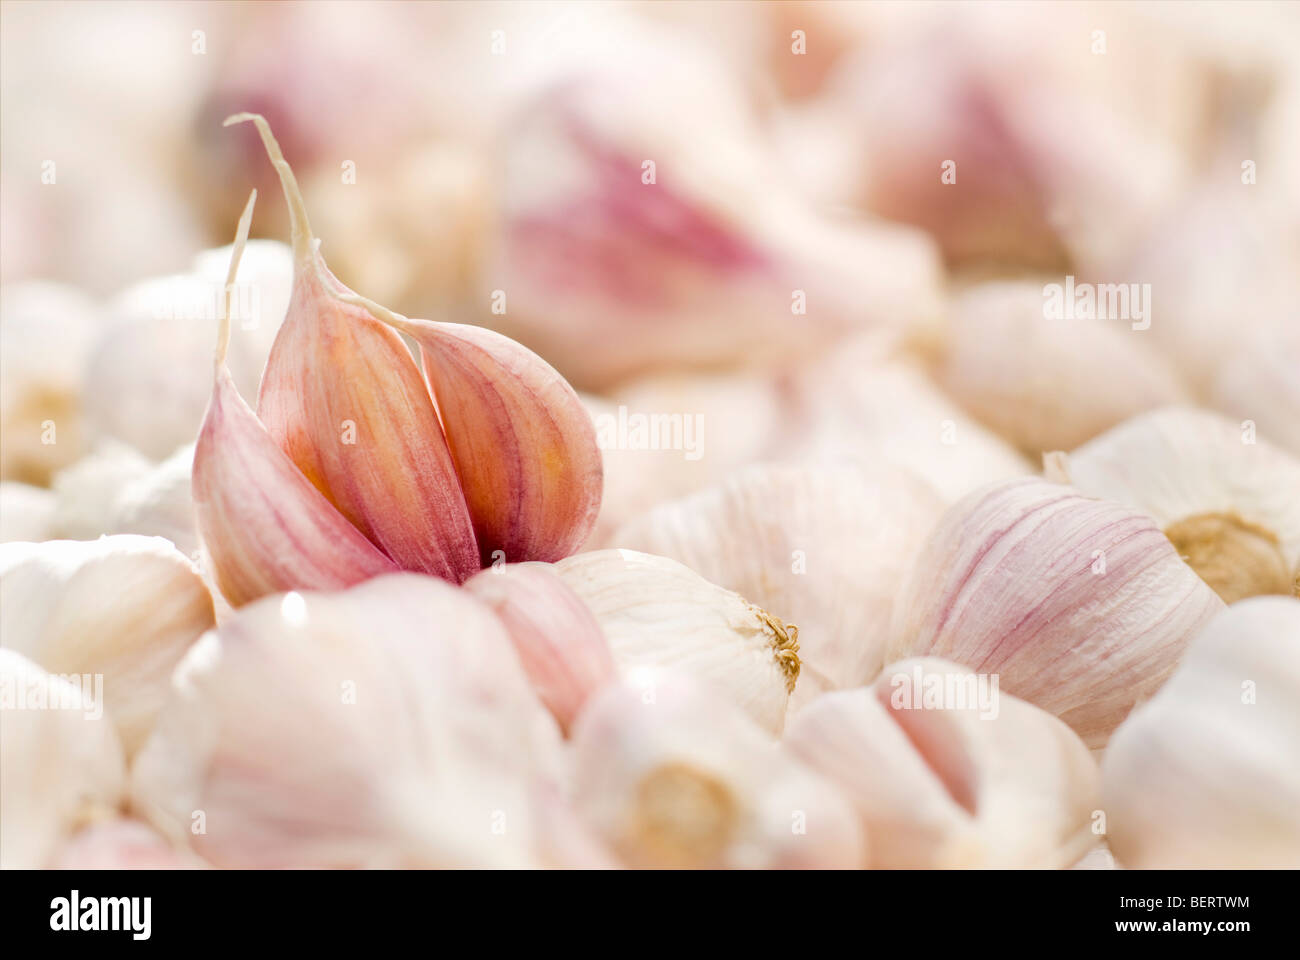 Certified organic fresh garlic - Stock Image